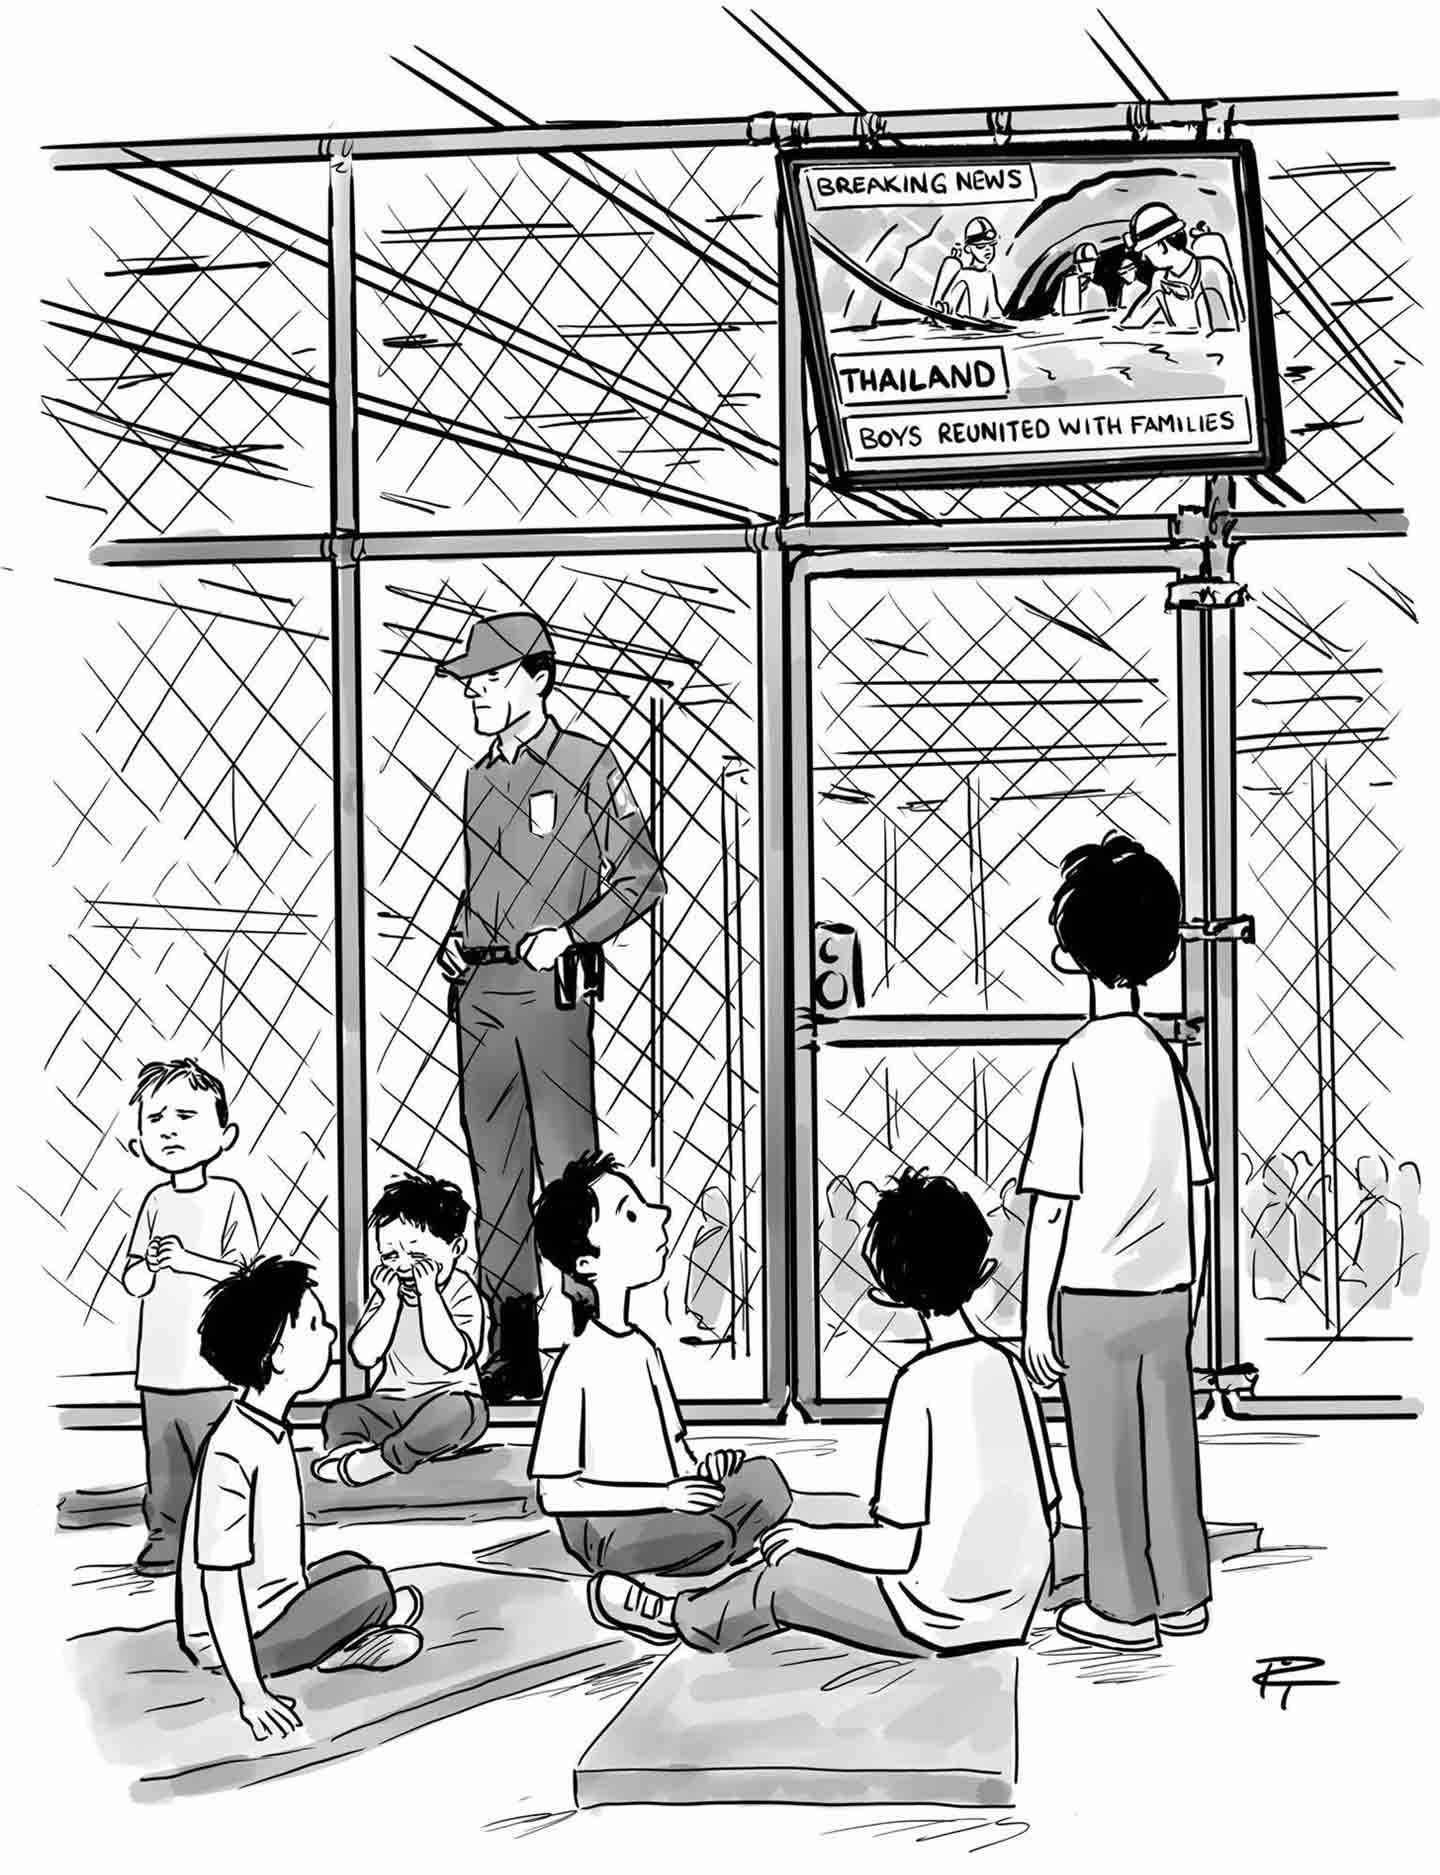 Pia Guerra cartoon shows detained children watching boys rescued in Thailand